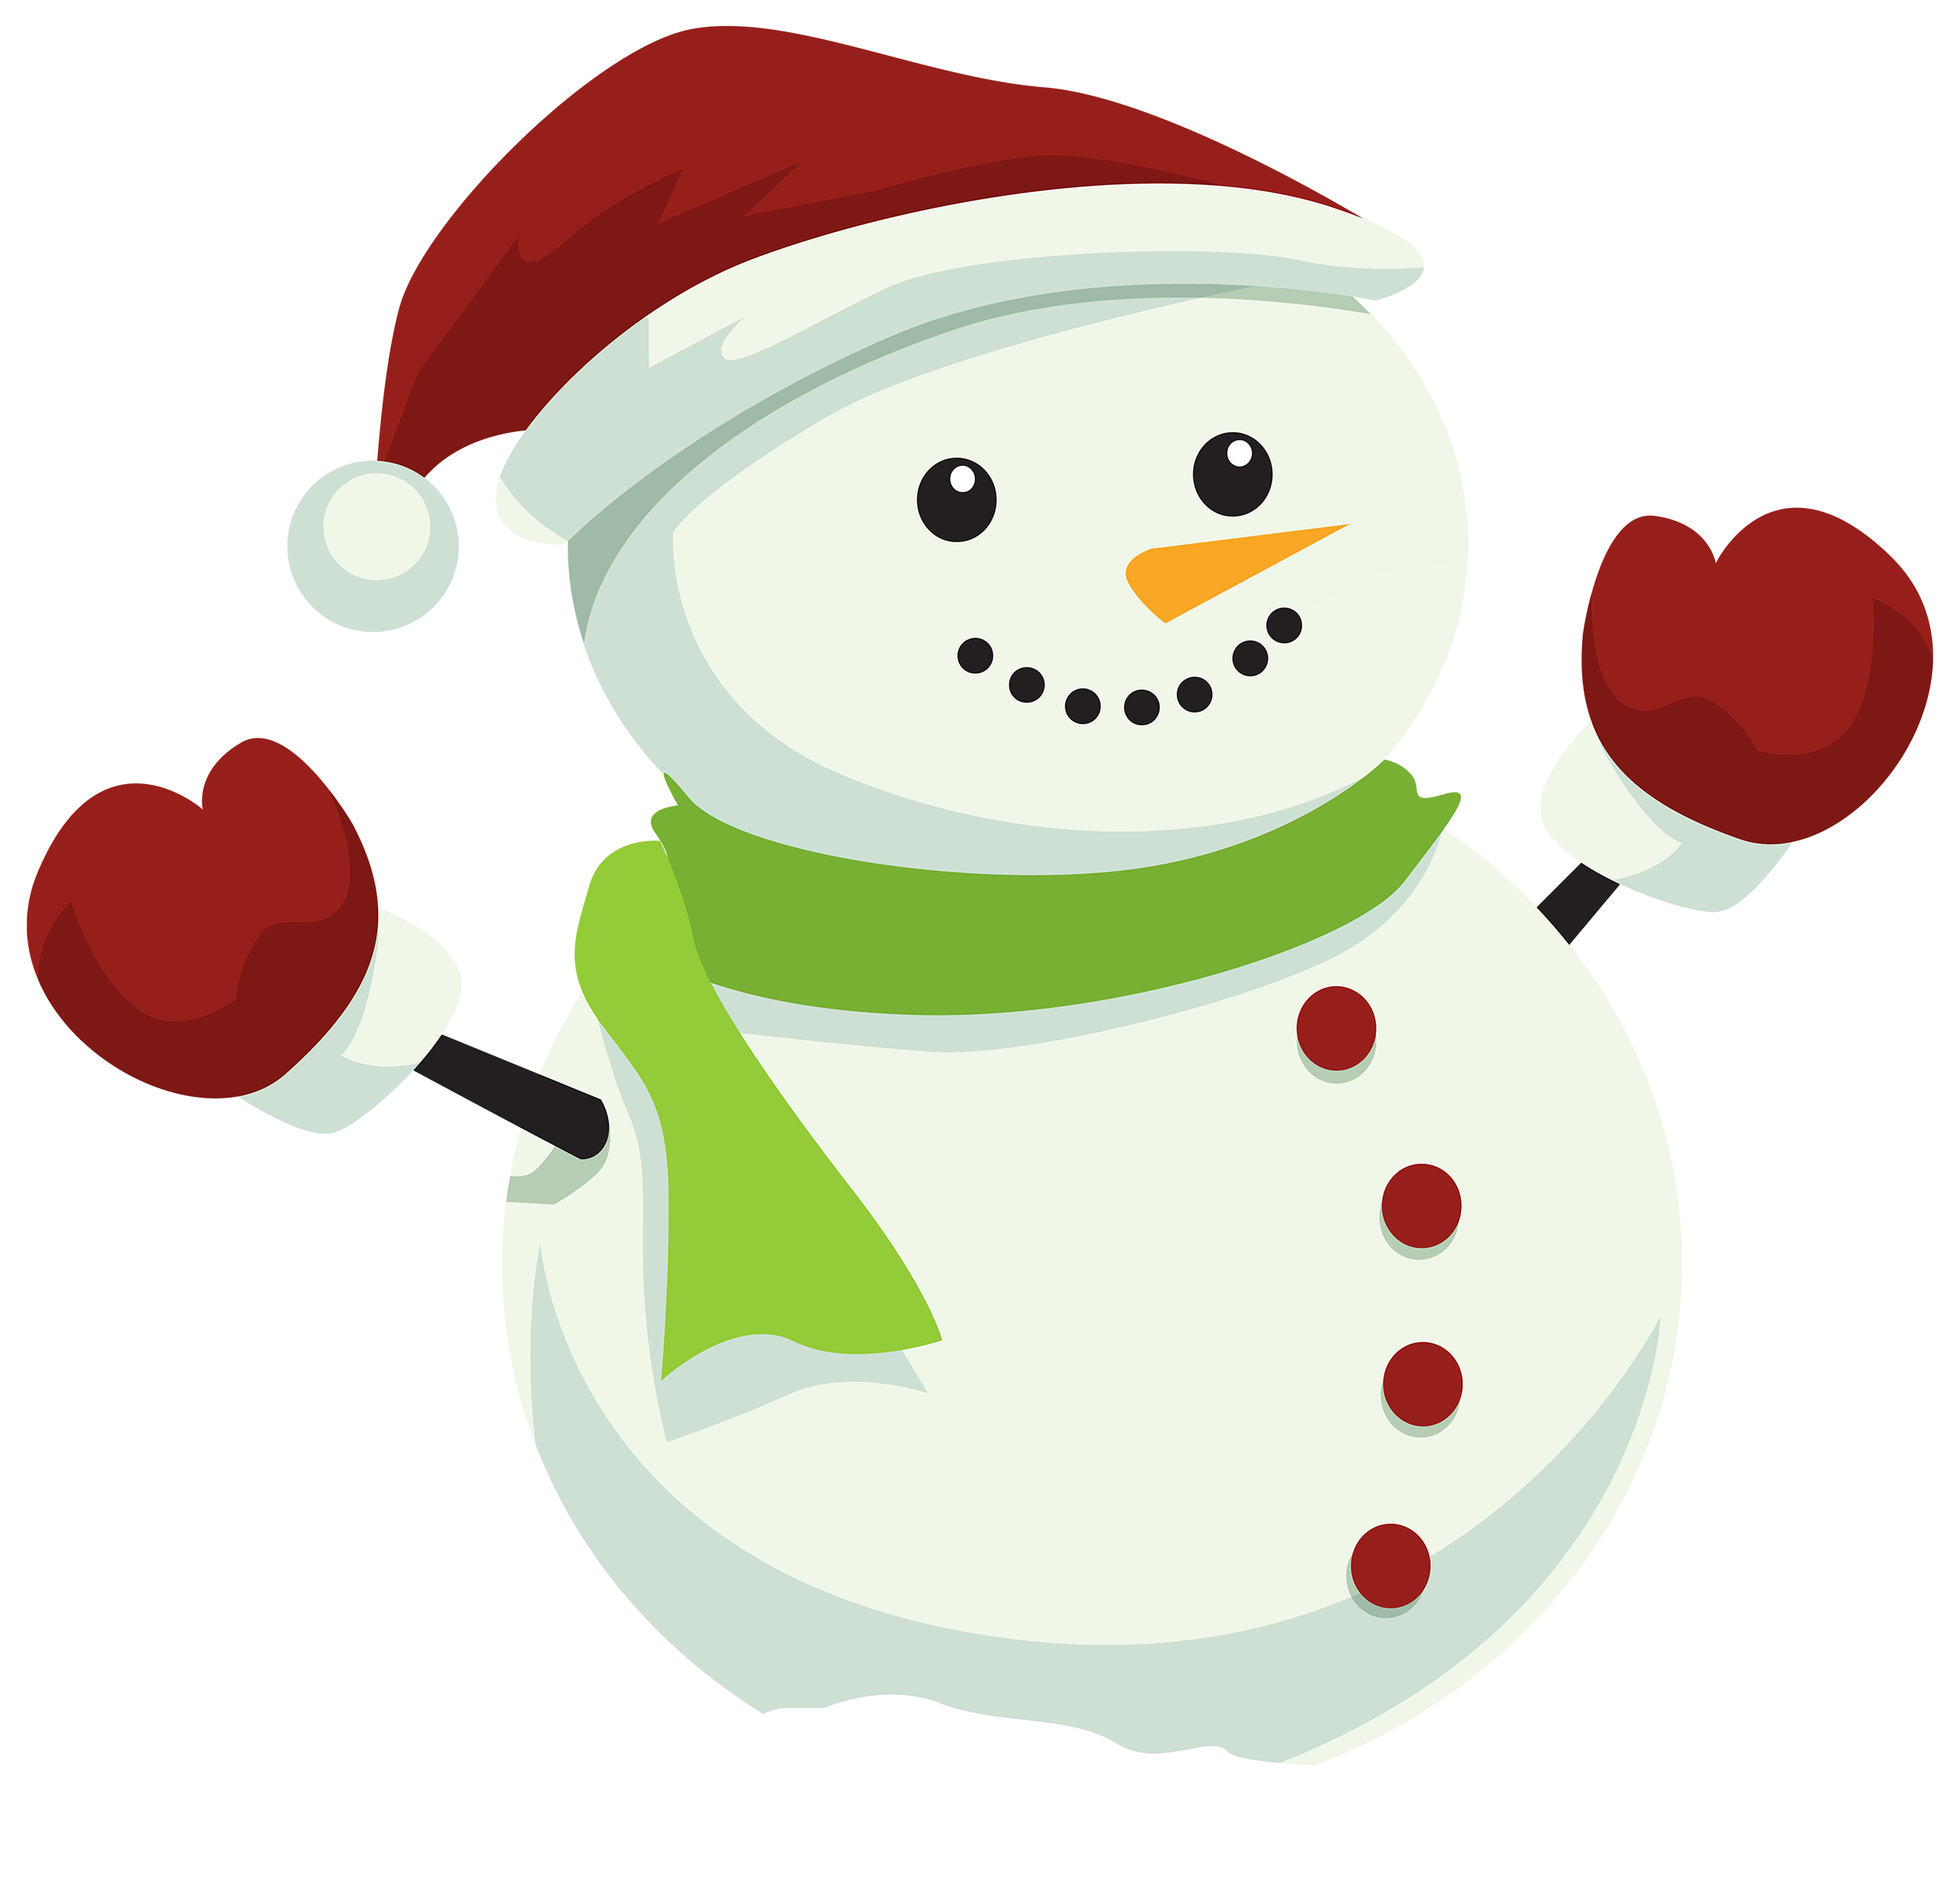 Snowman clipart png image freeuse library Snowman with Christmas Hat PNG Clipart - Best WEB Clipart image freeuse library